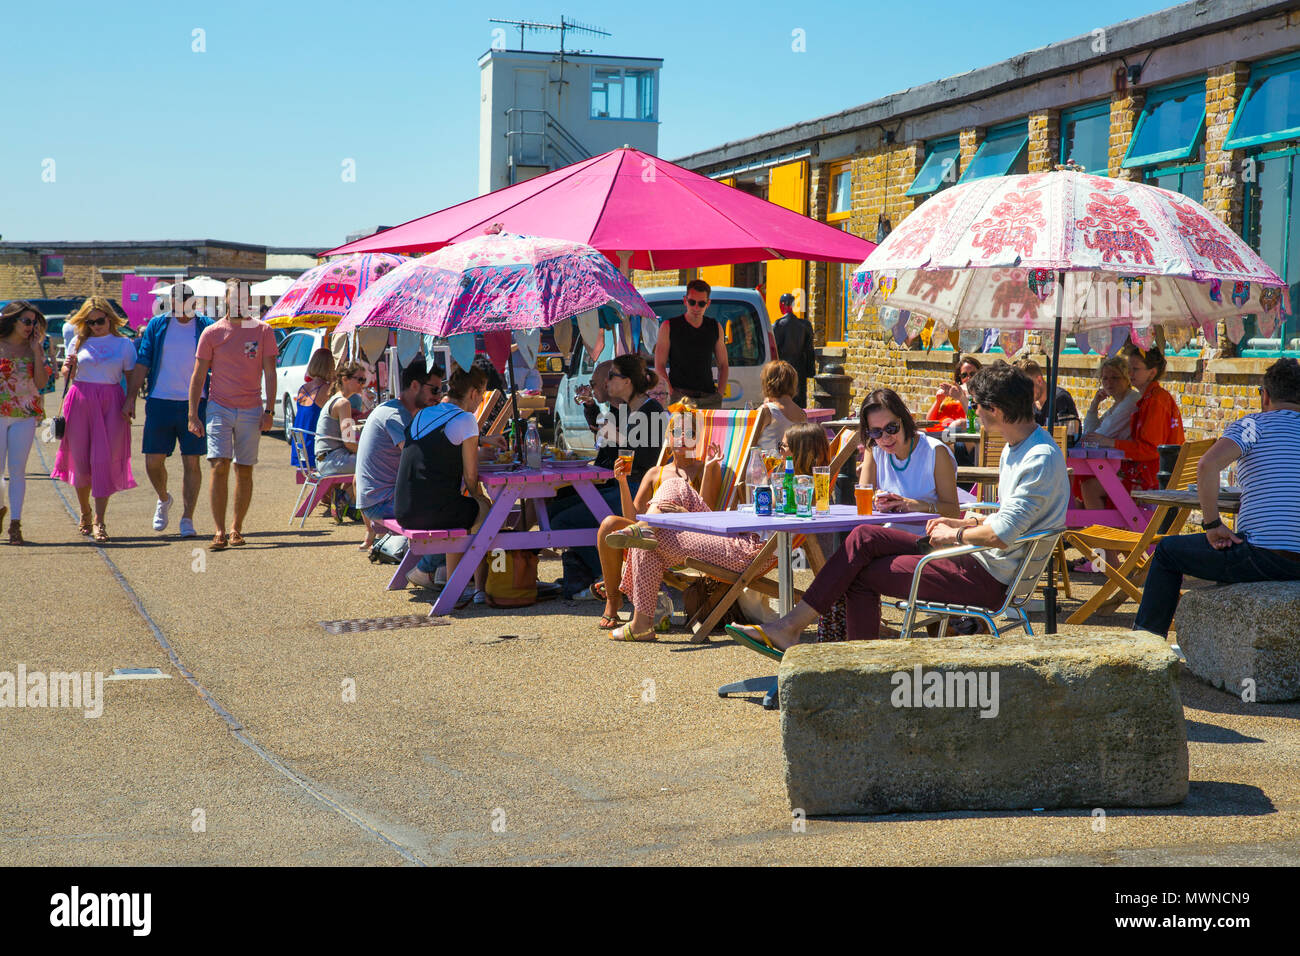 People sitting at cafe (BeBeached Cafe) tables on a hot summer day at the Harbour Arm in Margate, UK - Stock Image